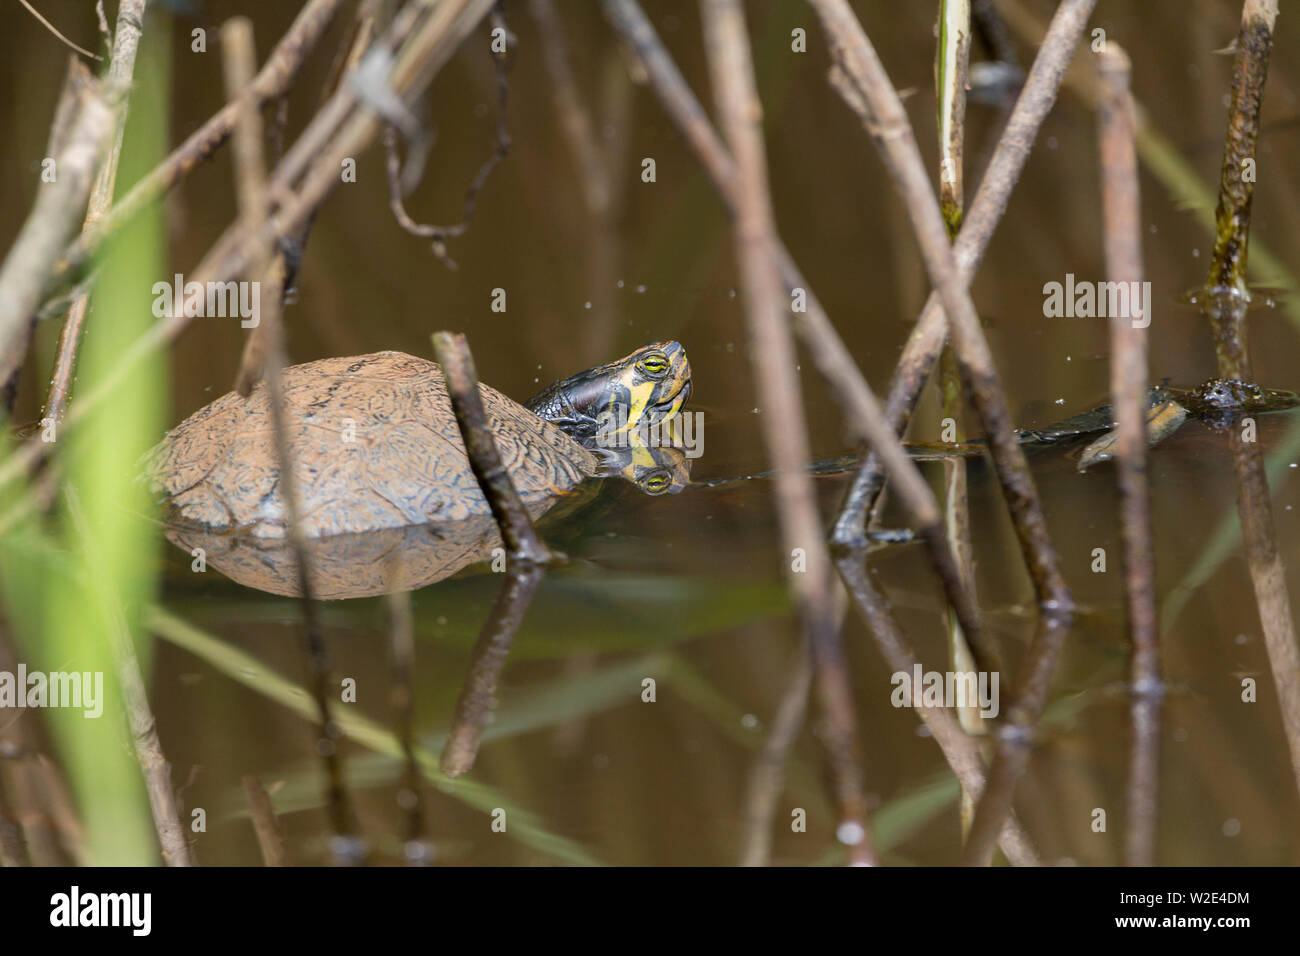 Terrapin in British nature reserve sunbathing in small pond area. Reptile pets are released into the UK wild waters and thrive on aquatic wildlife - Stock Image